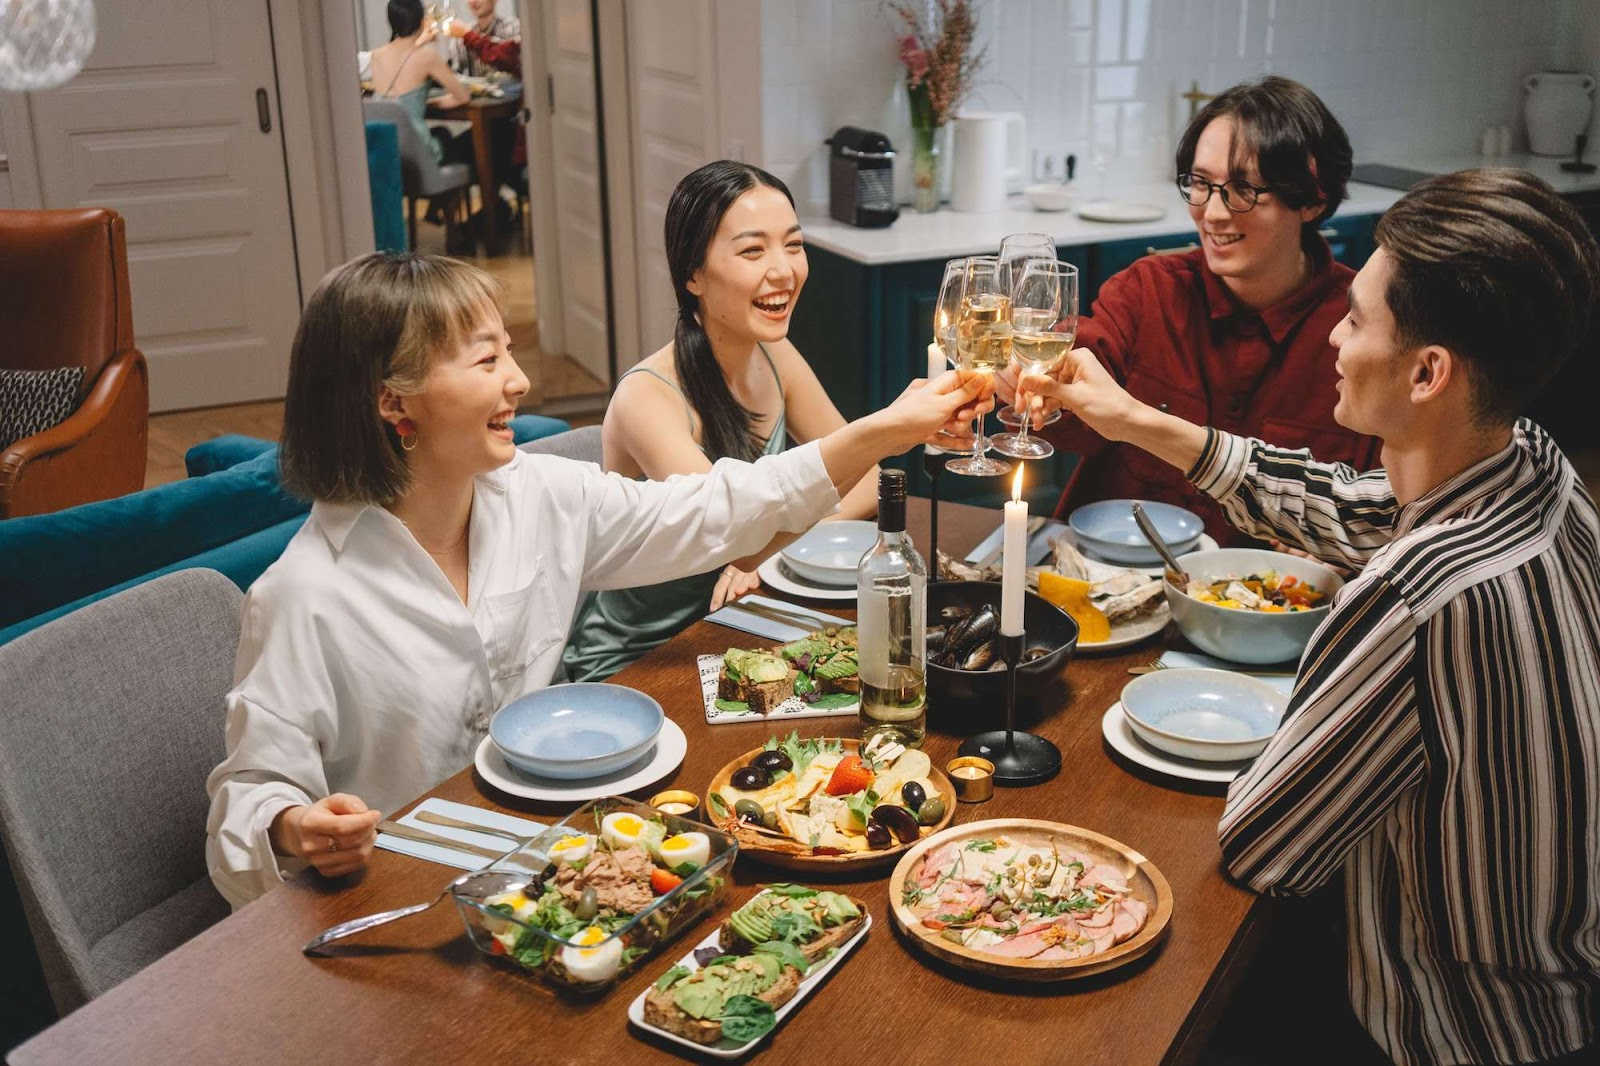 A group of people, two men and two women, toasting and smiling over a healthy meal